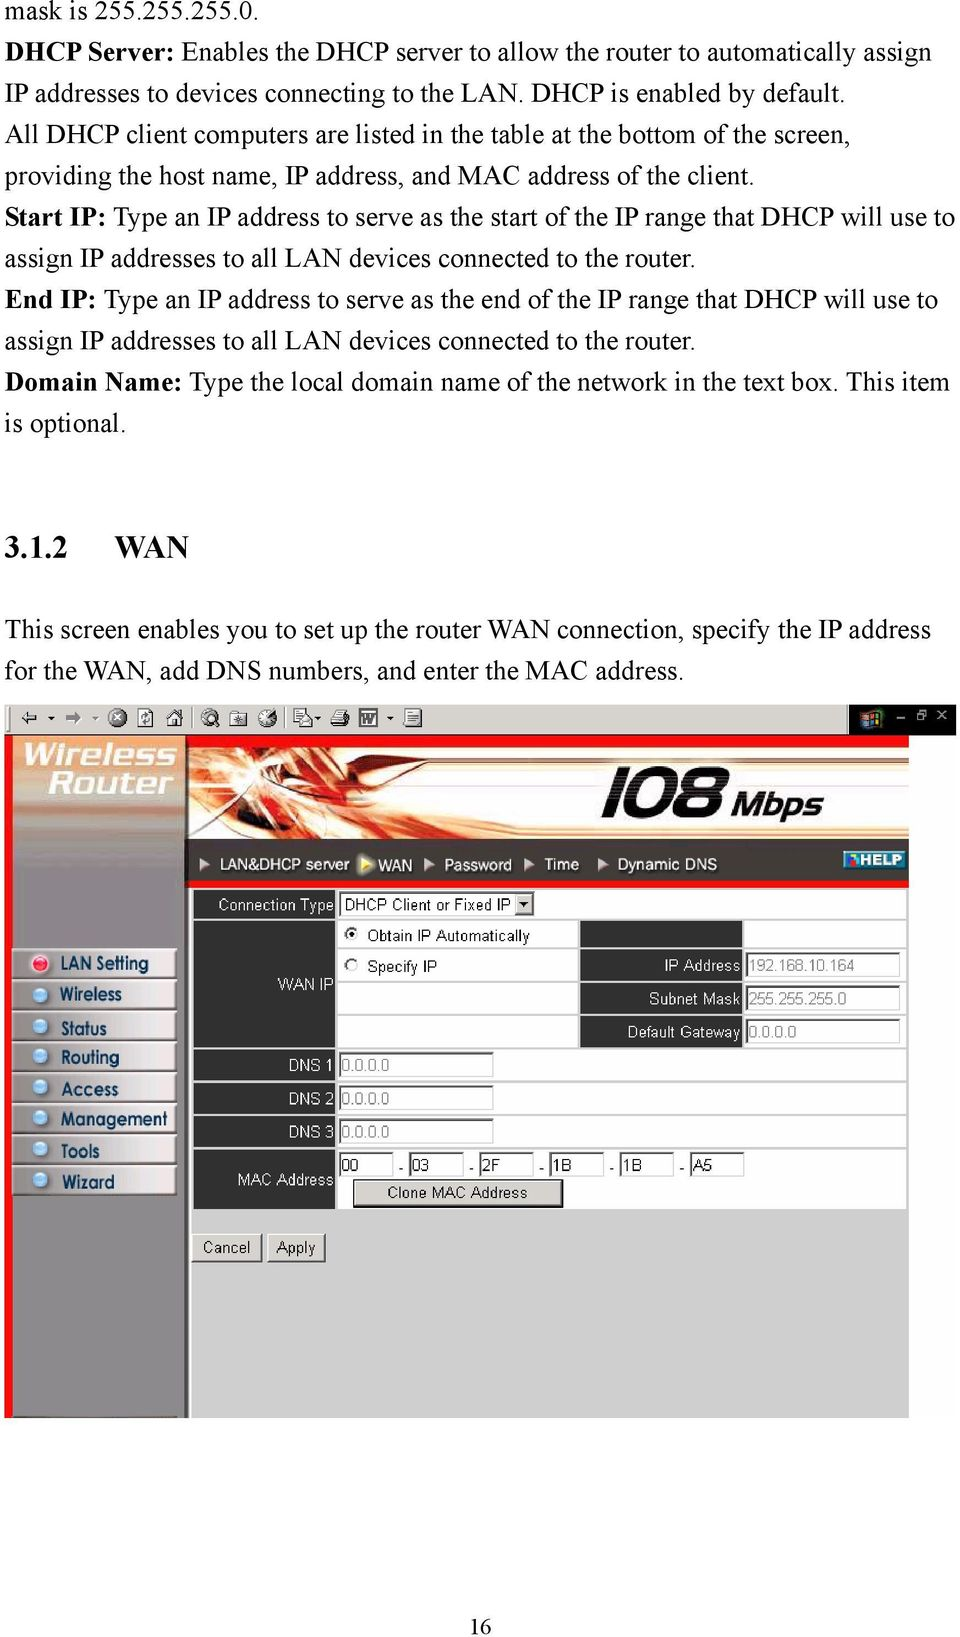 Start IP: Type an IP address to serve as the start of the IP range that DHCP will use to assign IP addresses to all LAN devices connected to the router.